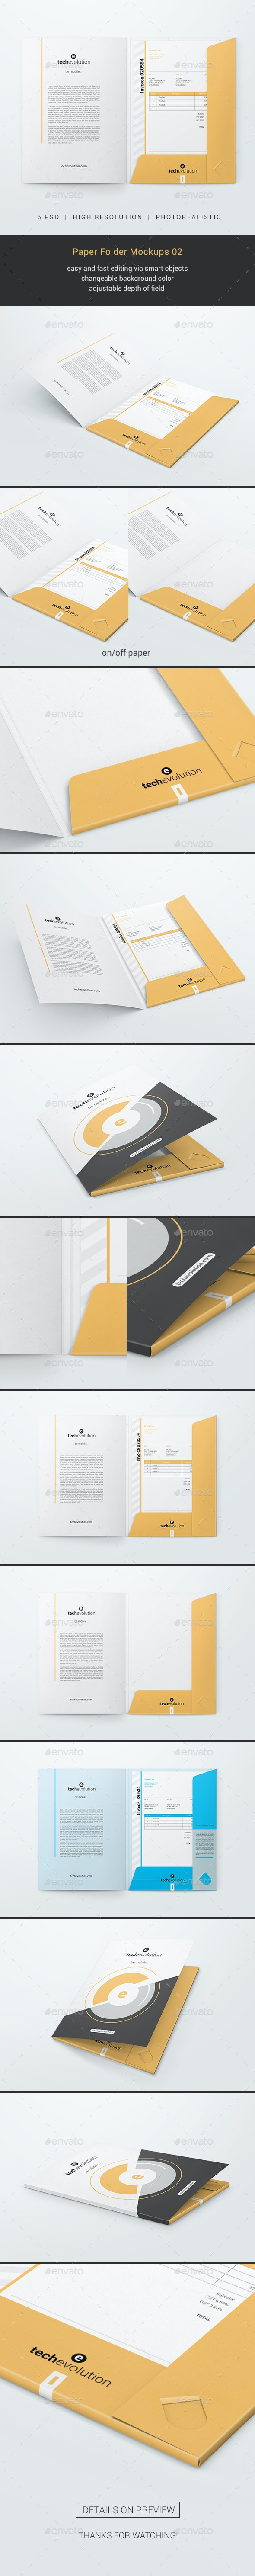 Paper Folder Mockups 02 - Miscellaneous Print